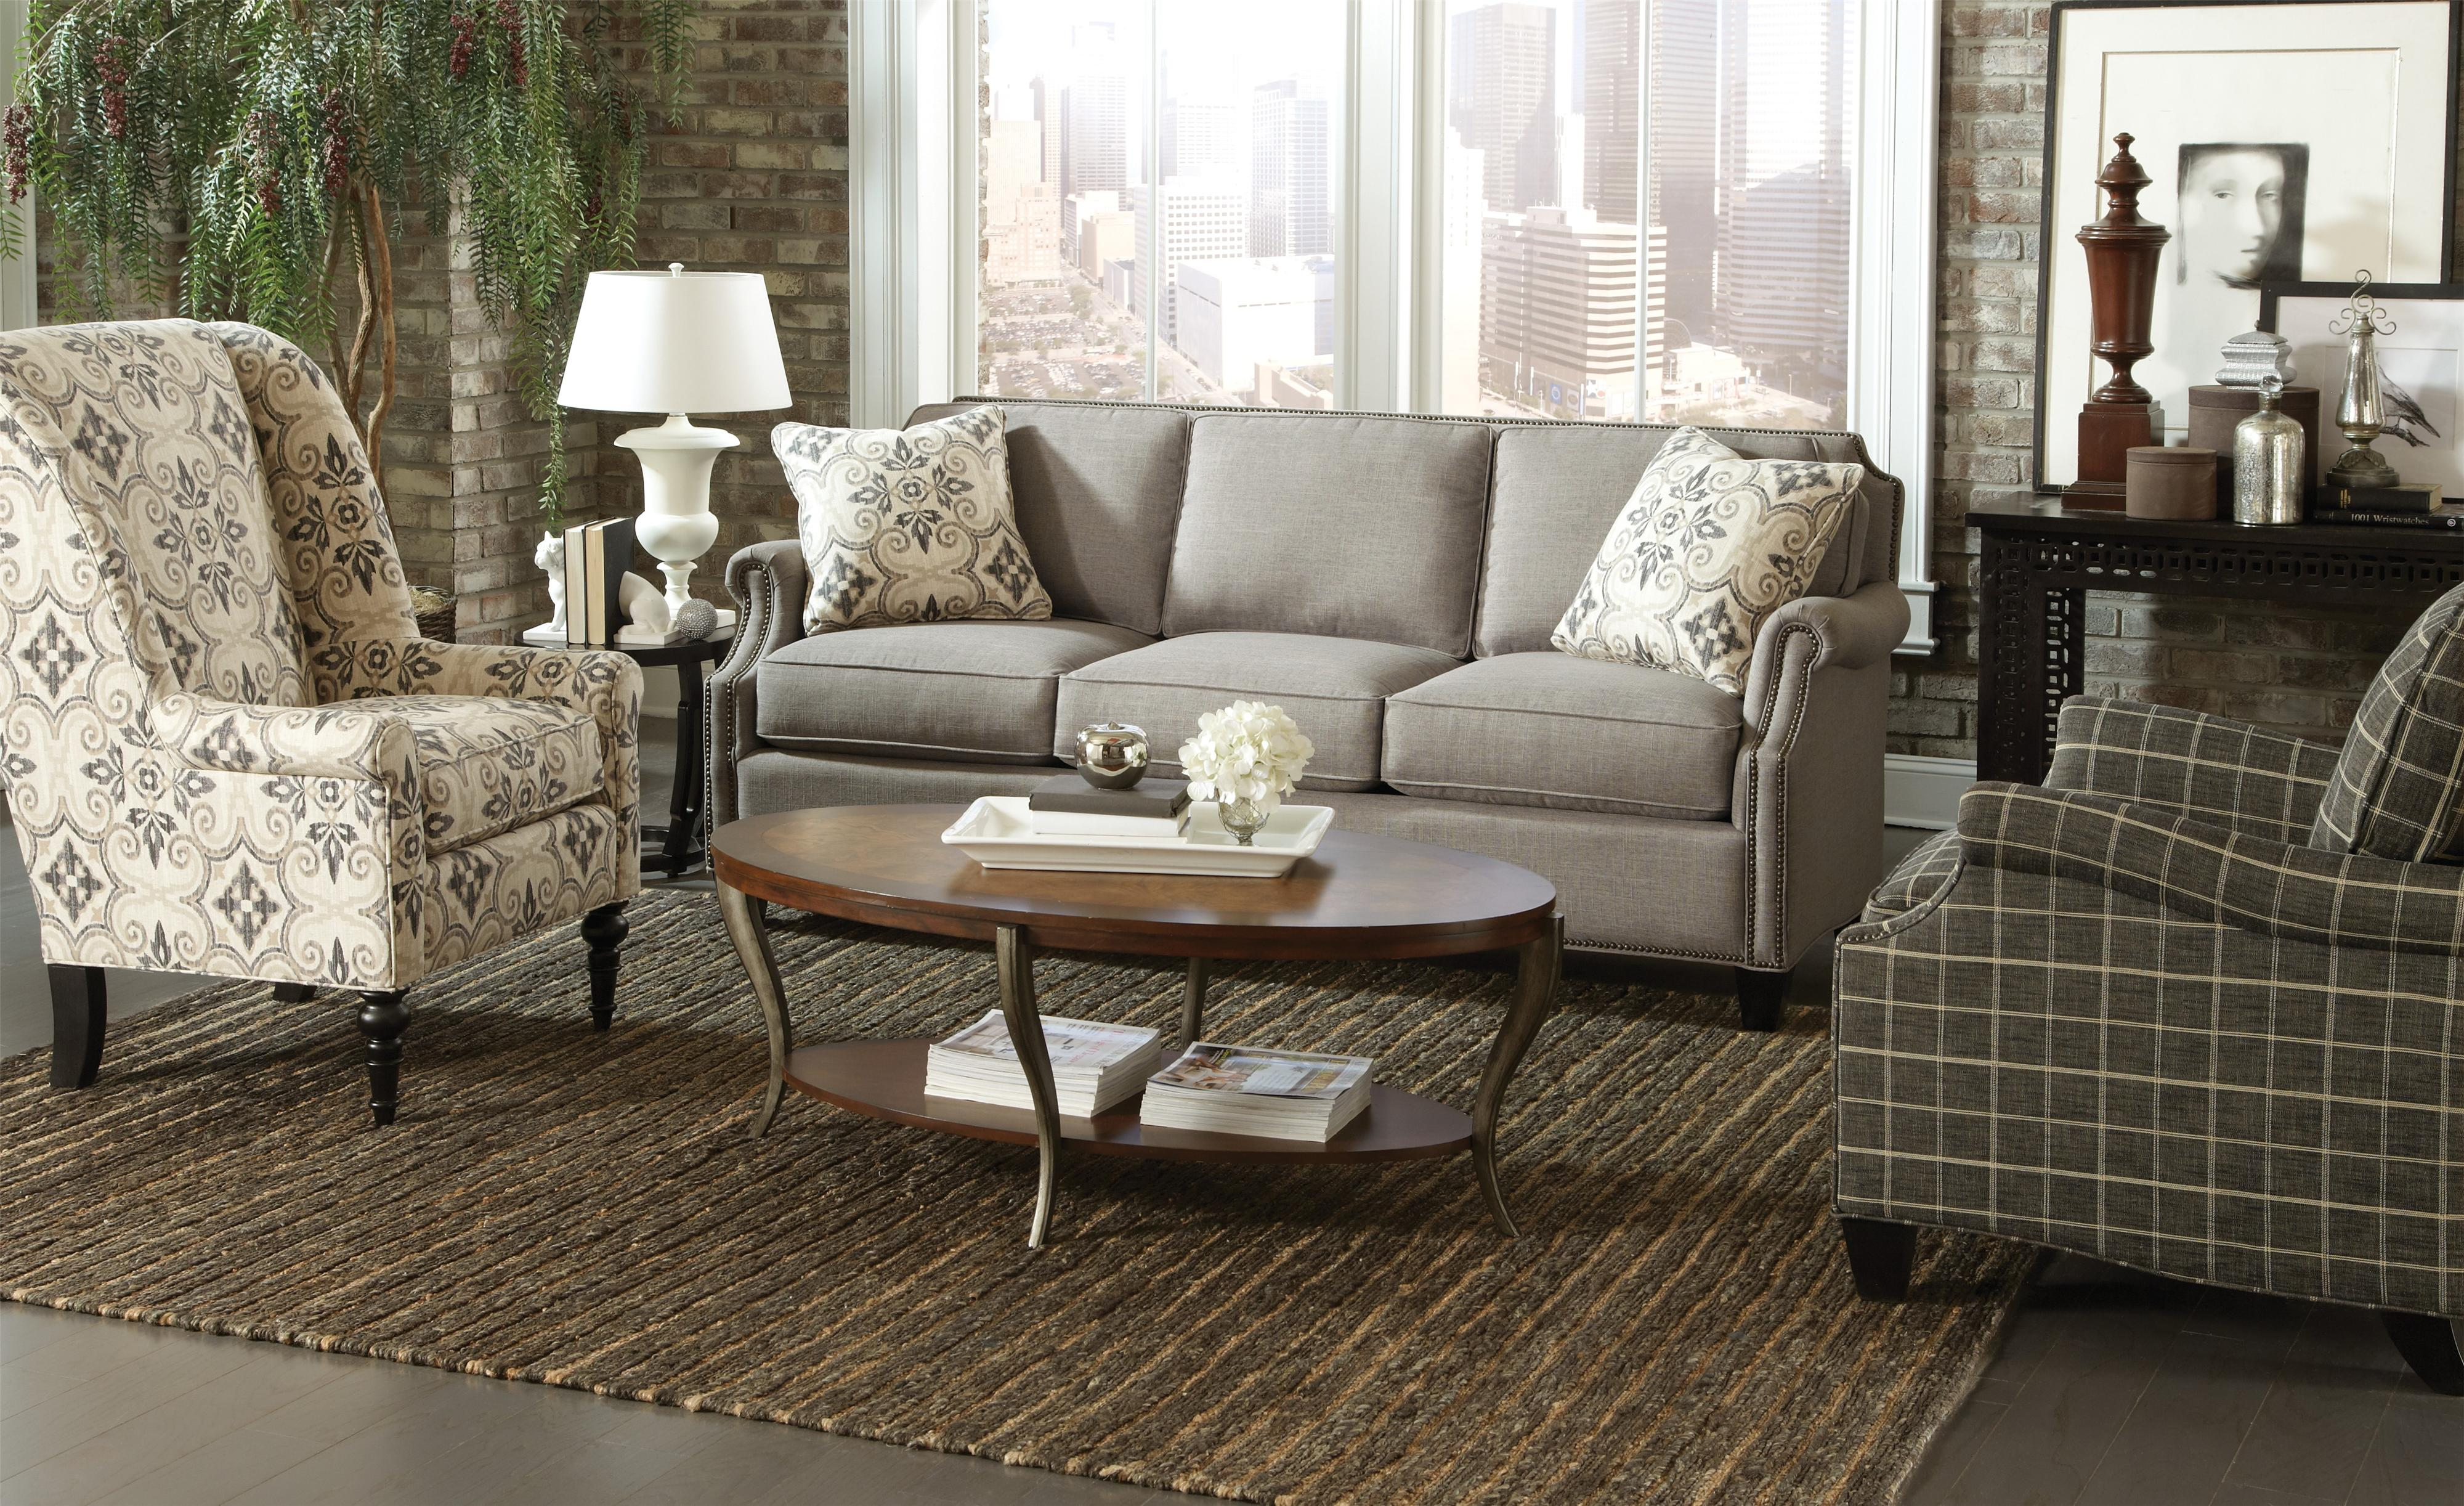 Transitional Sofa with Clipped Corner Shape and Nailhead Trim by